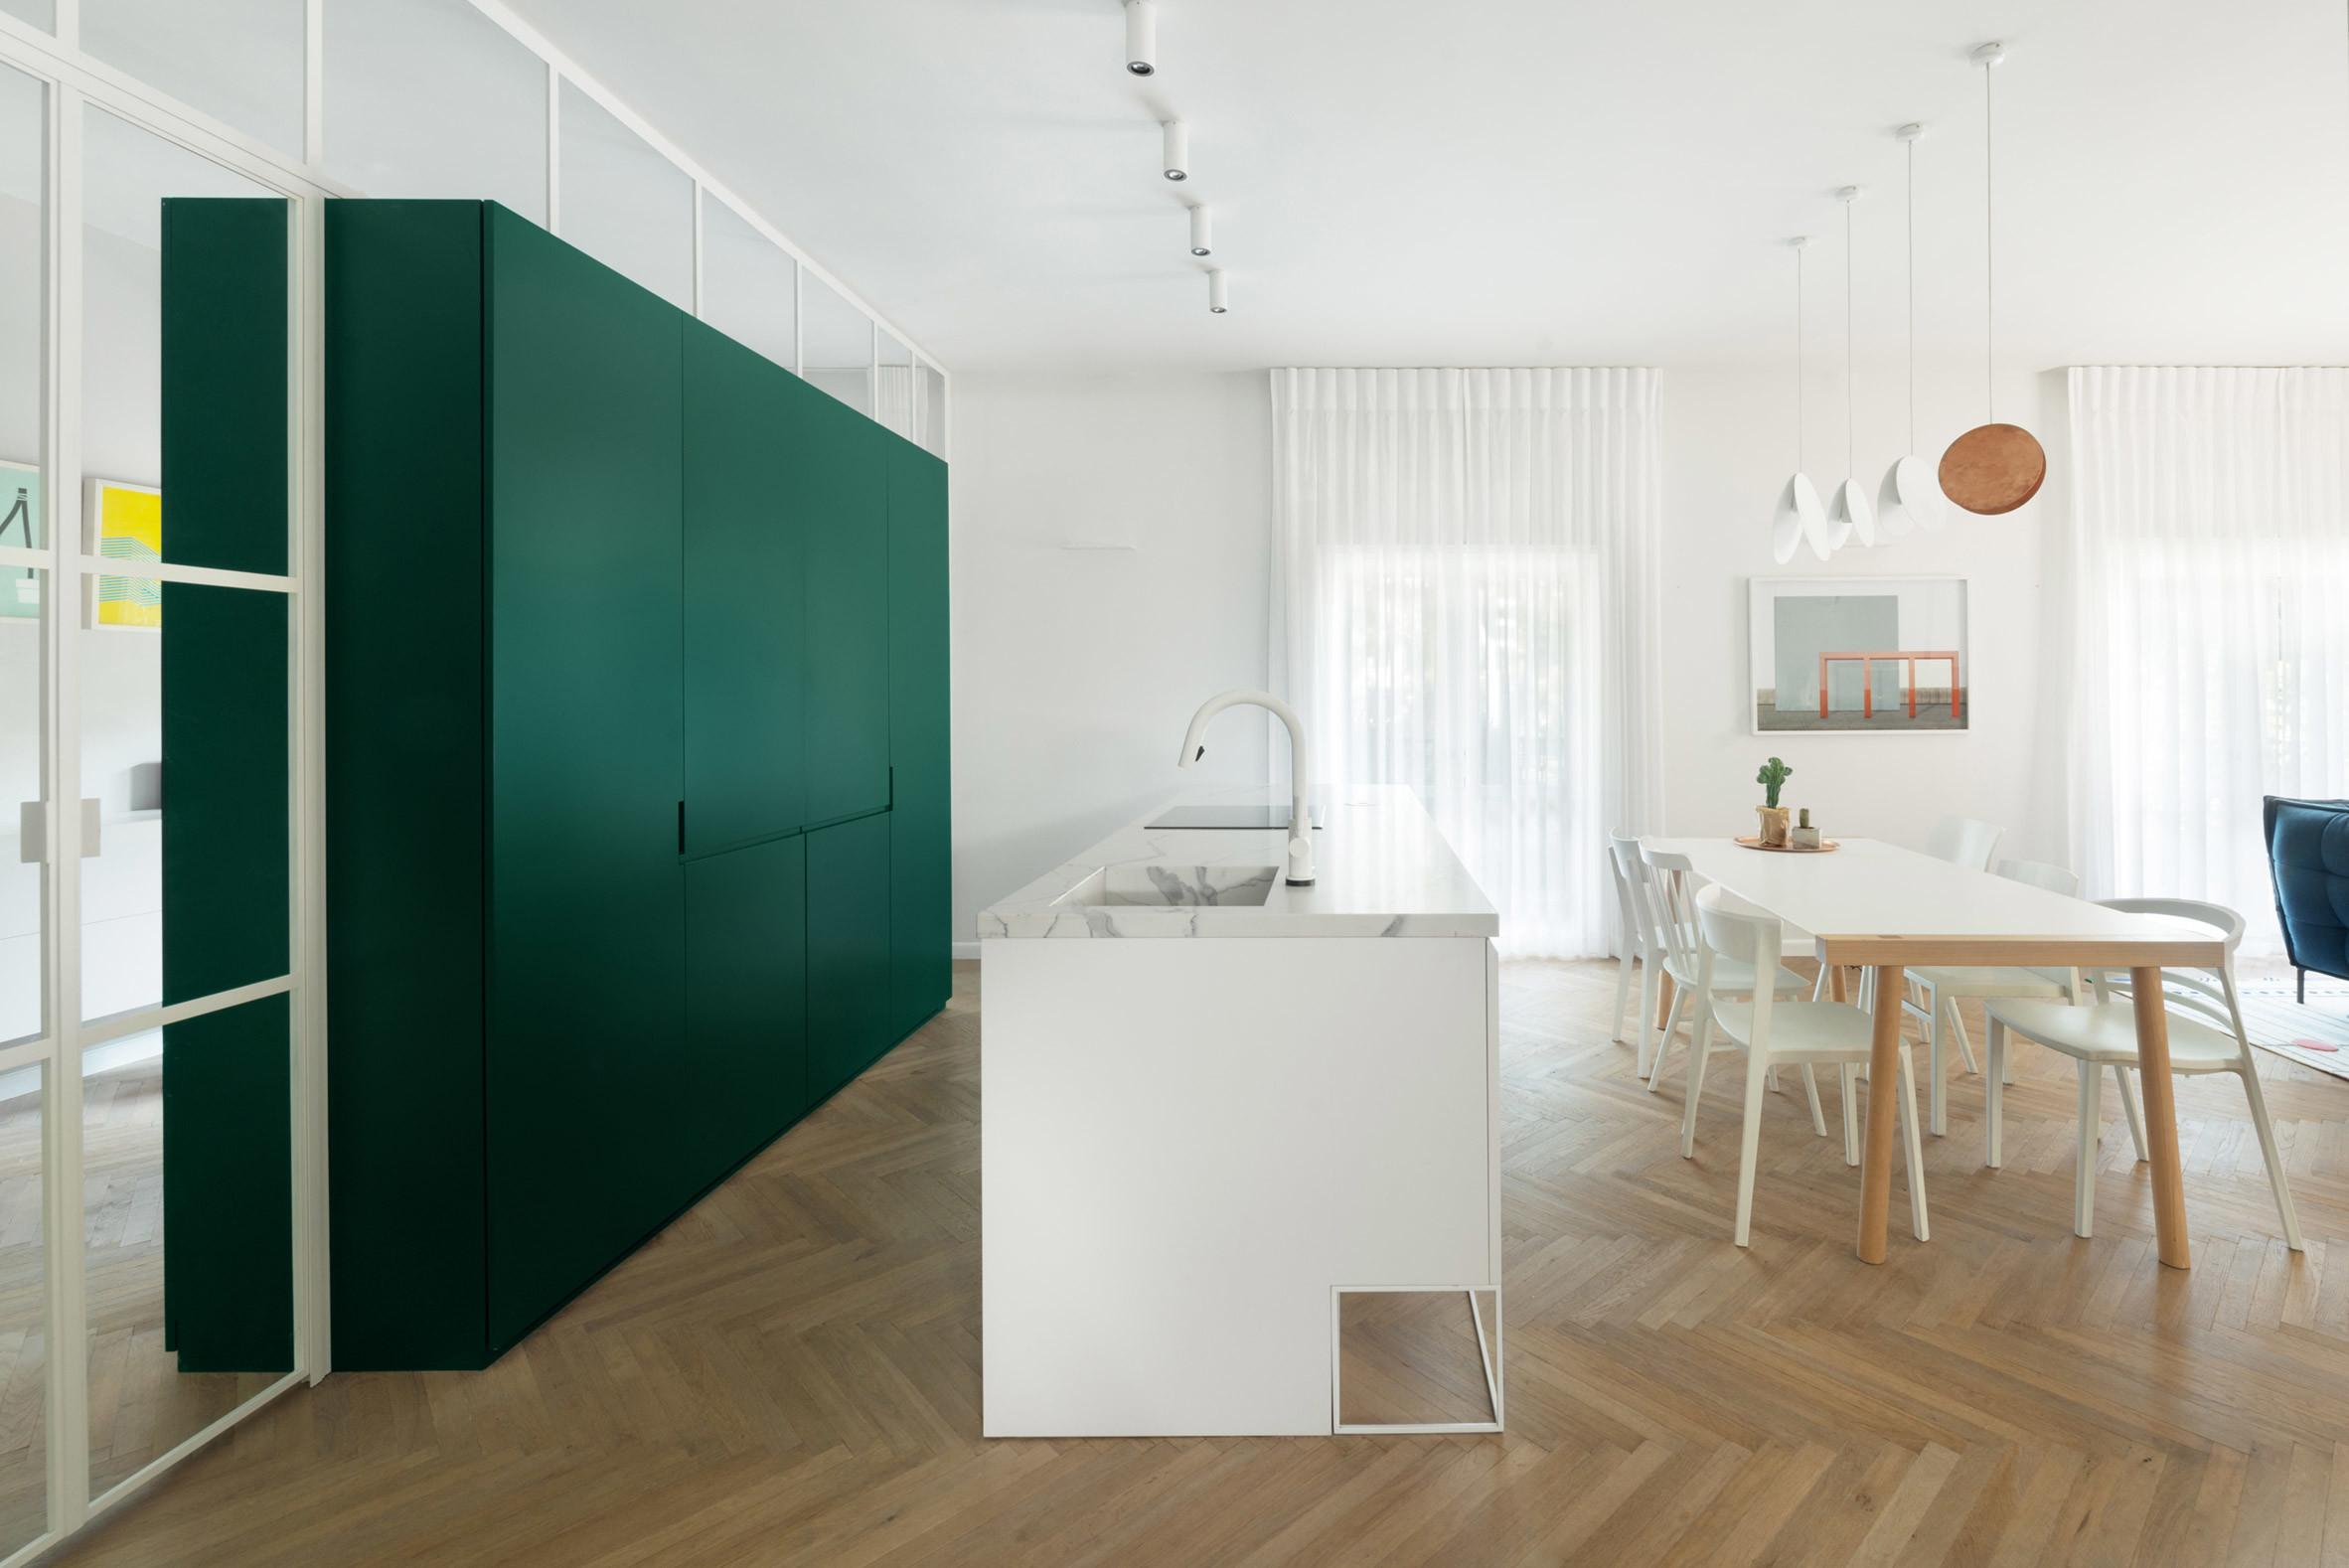 Colourful Cabinetry Offsets White Interior Bauhaus Era